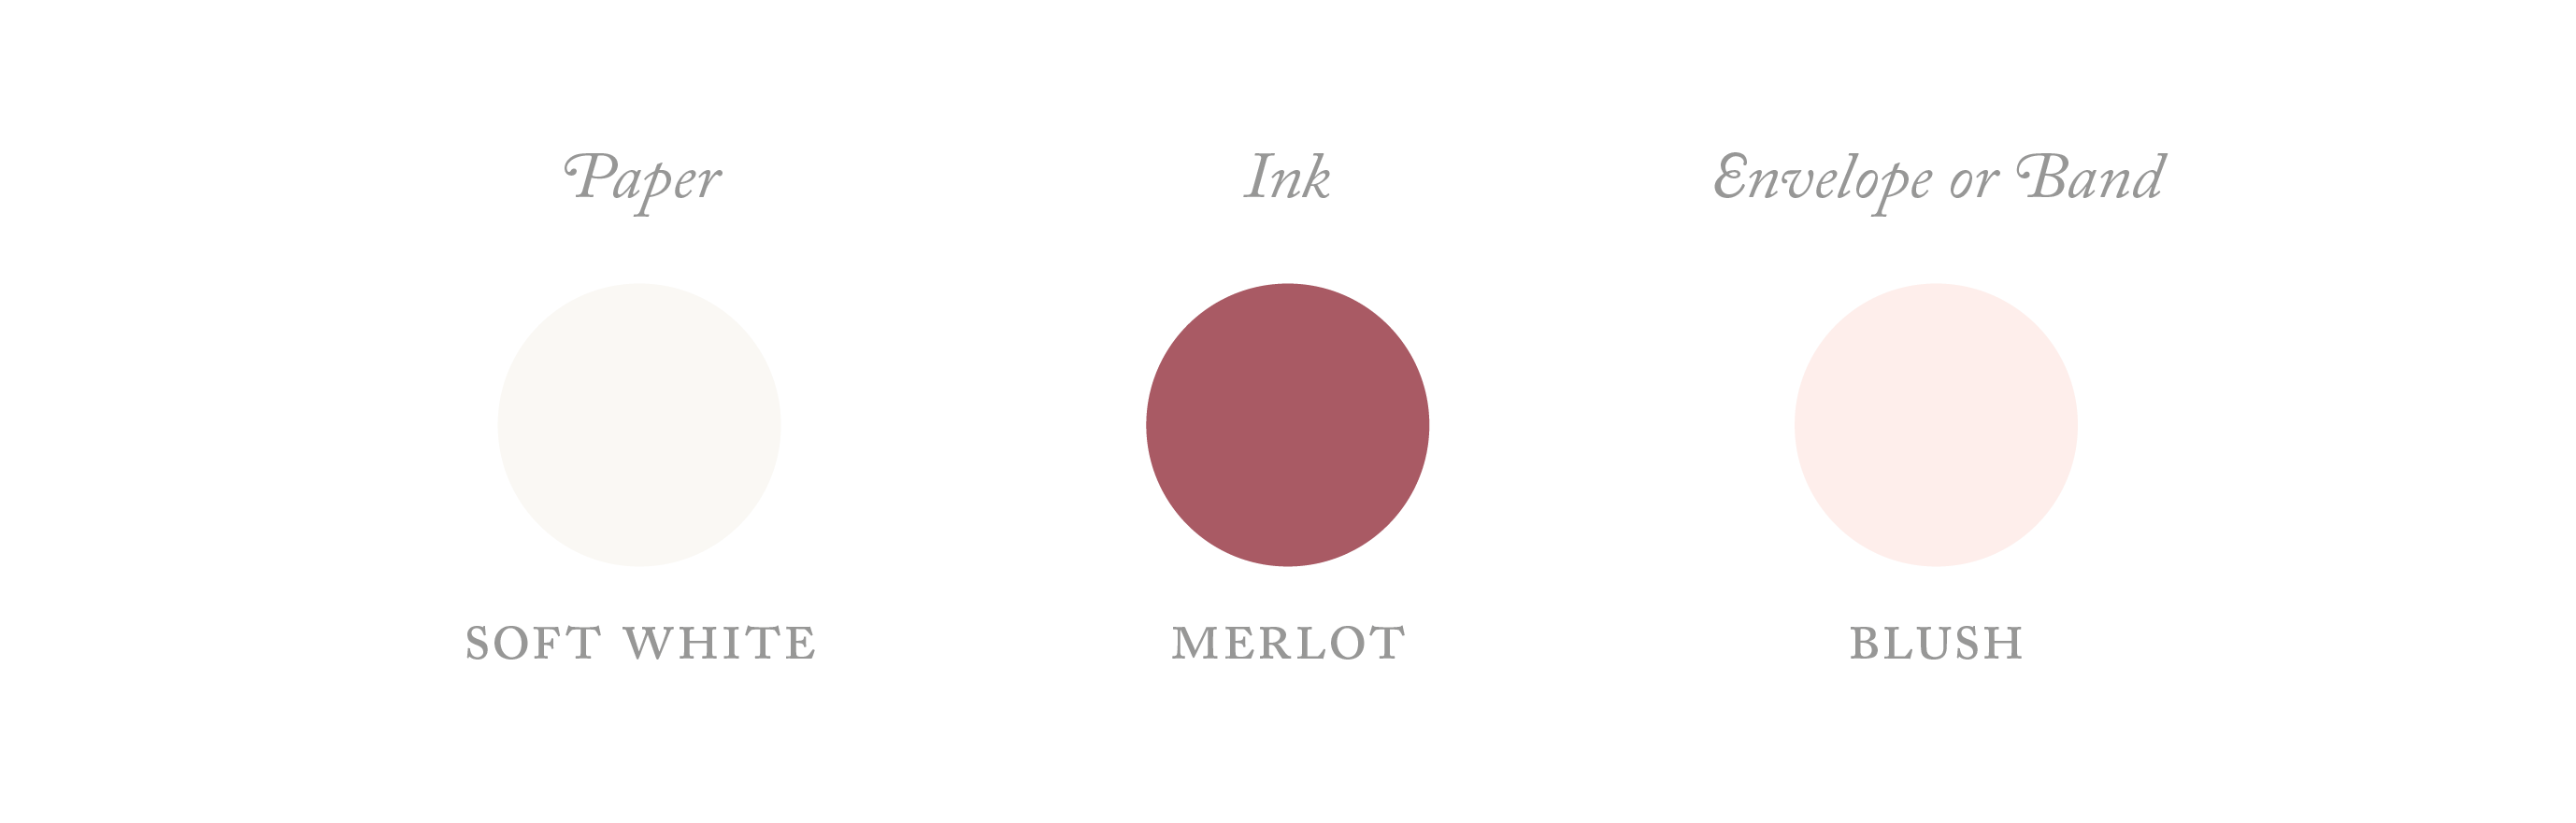 merlot colour palette